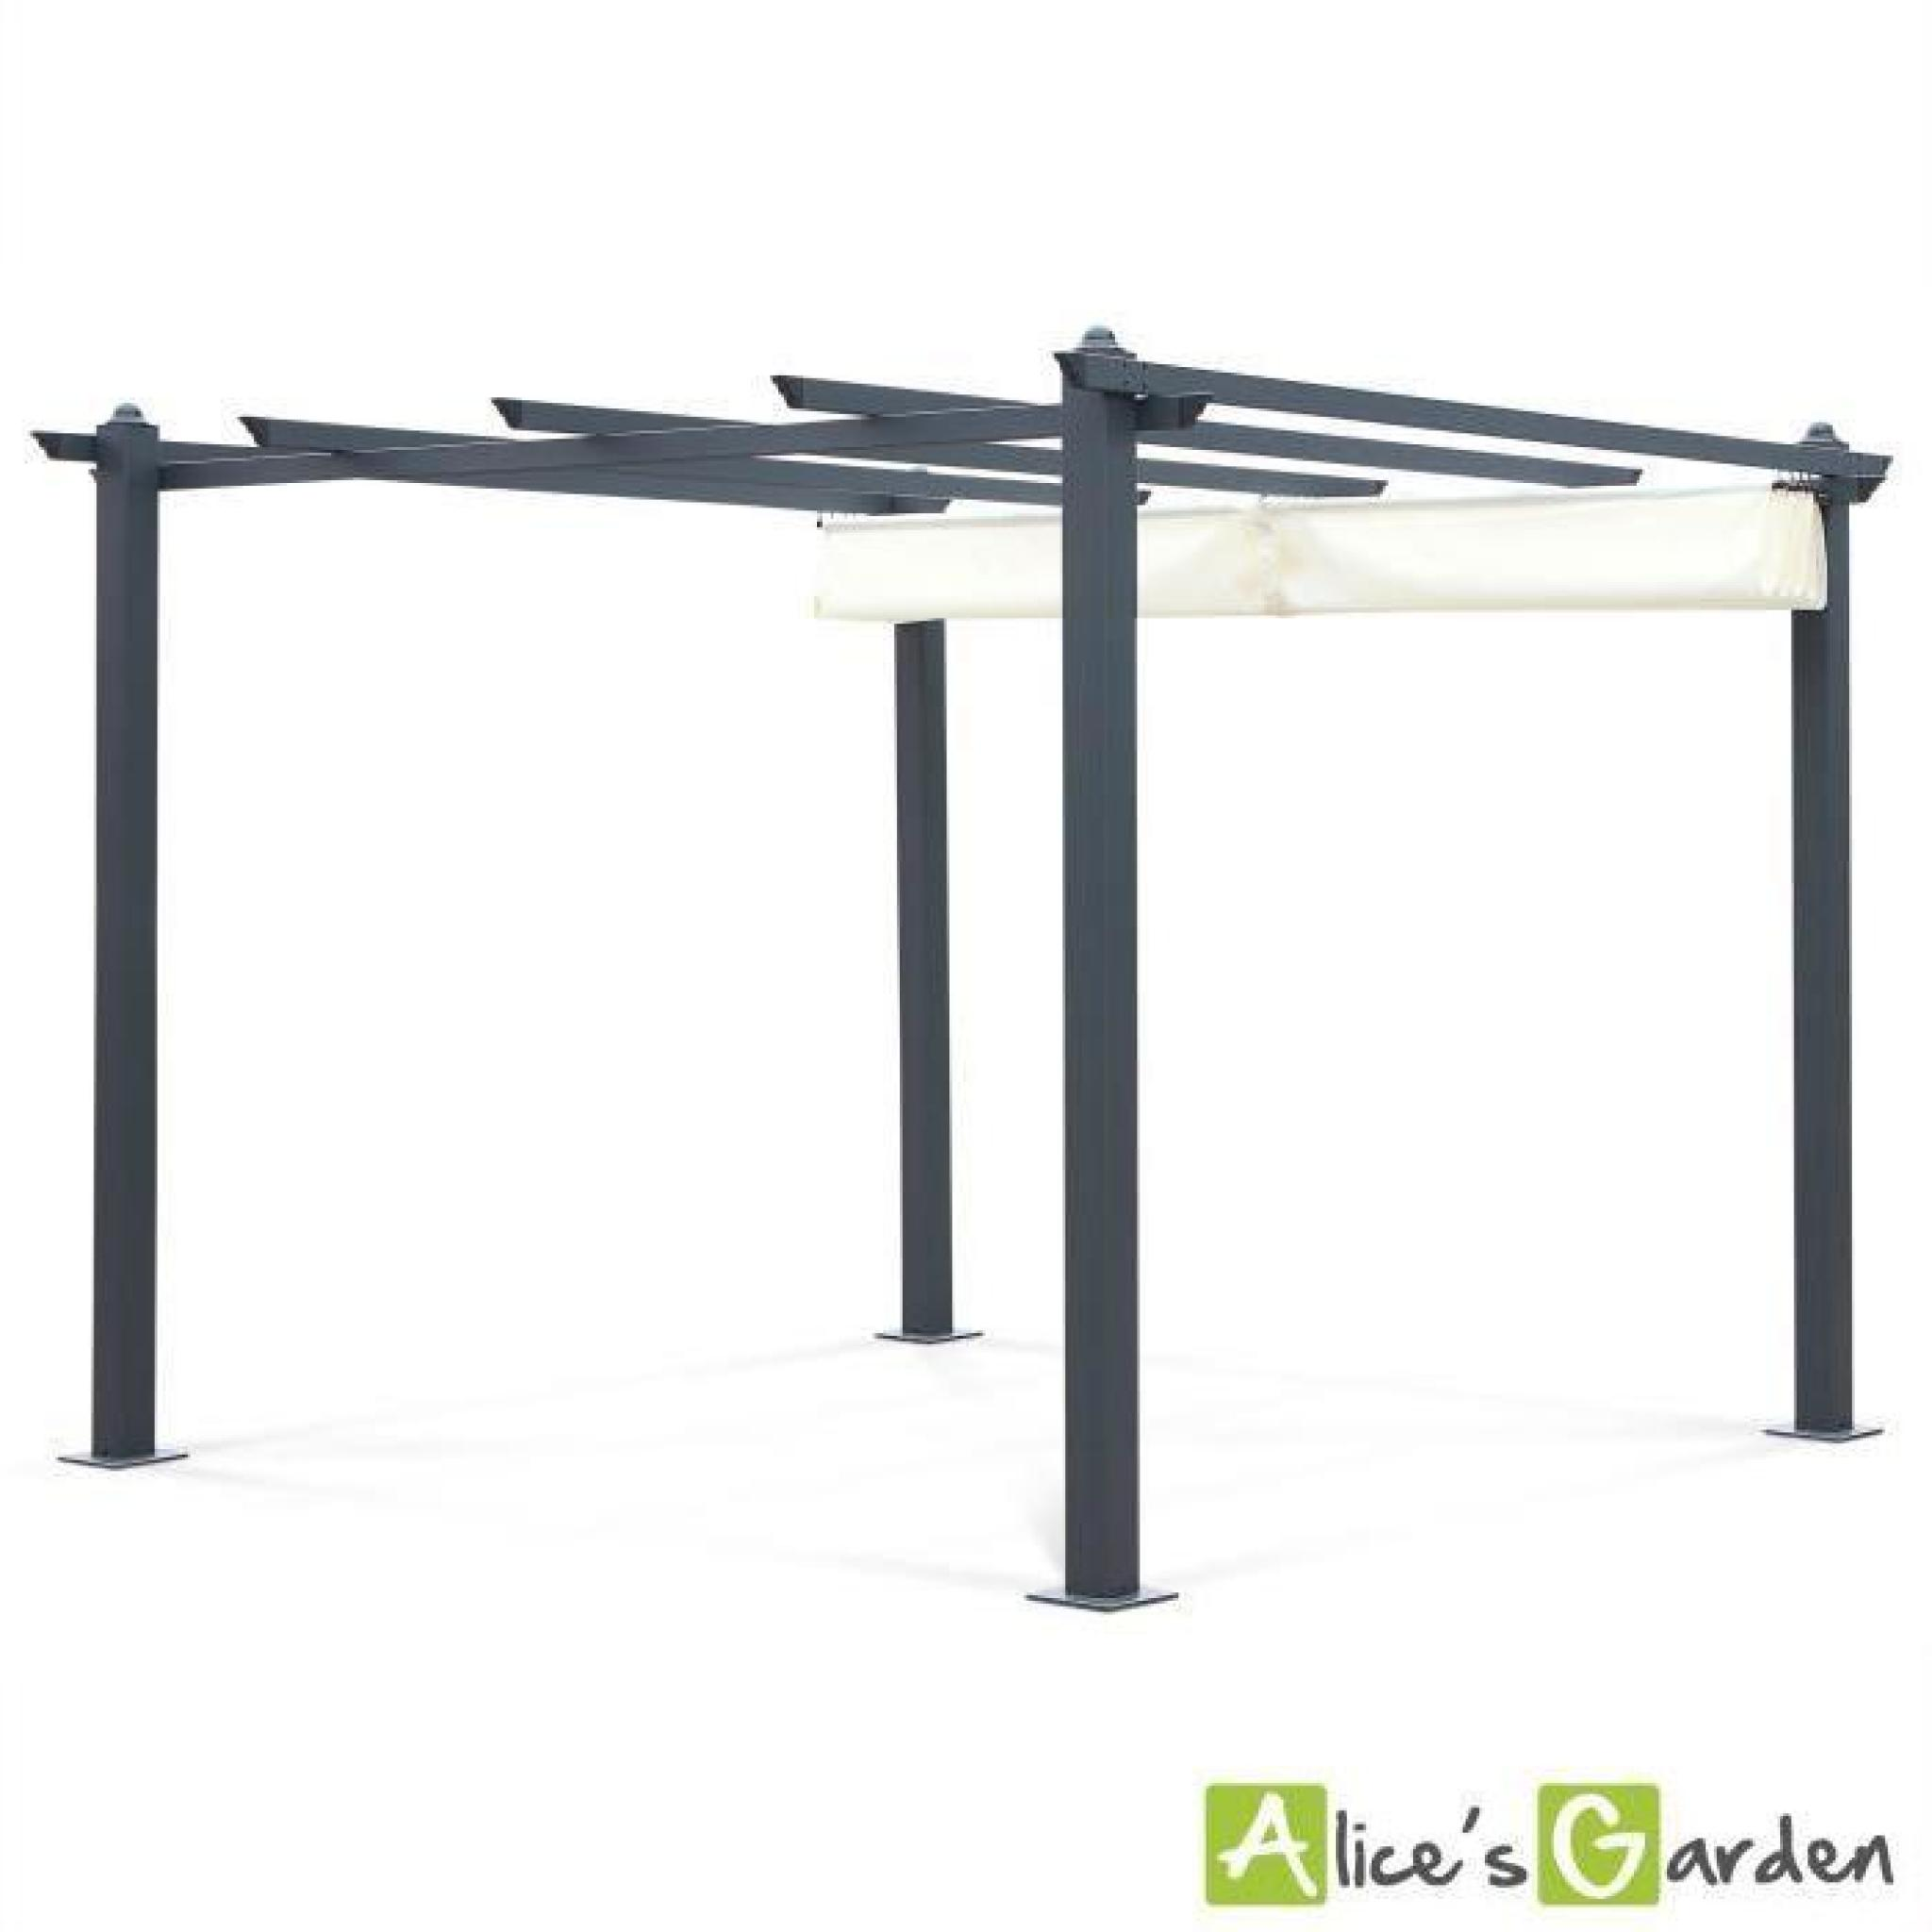 tente de jardin pergola aluminium 3x3m condate cru toile r tractable toil. Black Bedroom Furniture Sets. Home Design Ideas